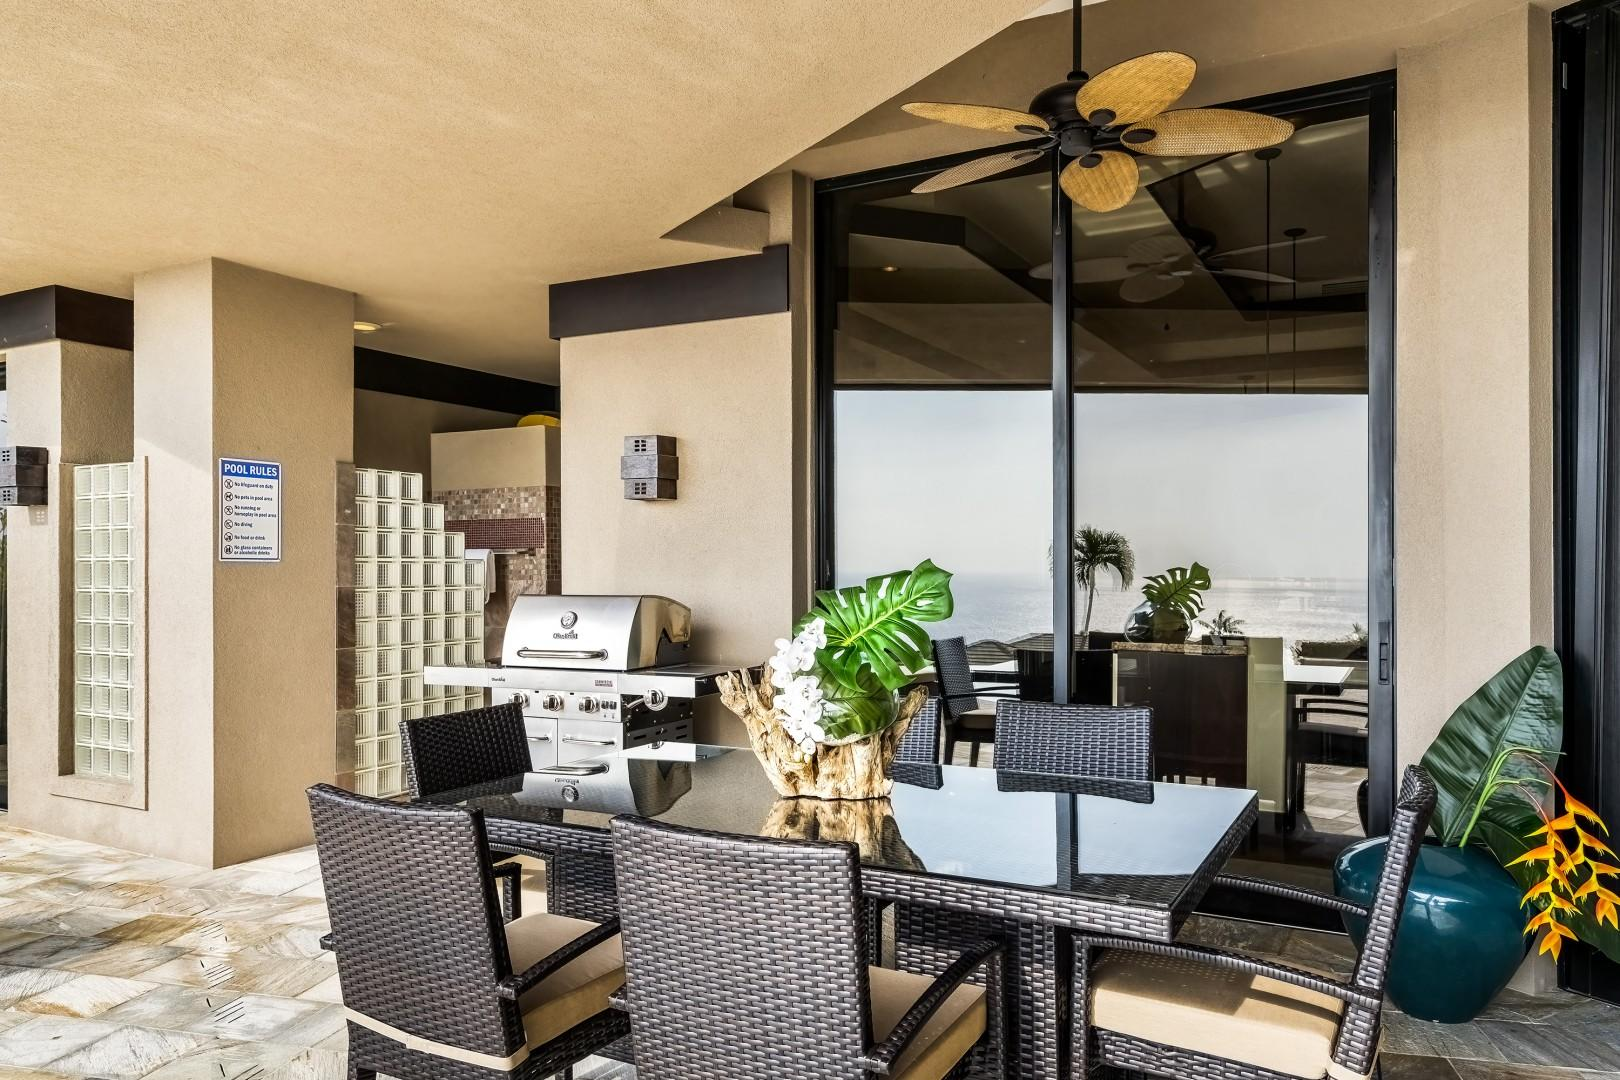 Outdoor dining for 6 steps from the kitchen